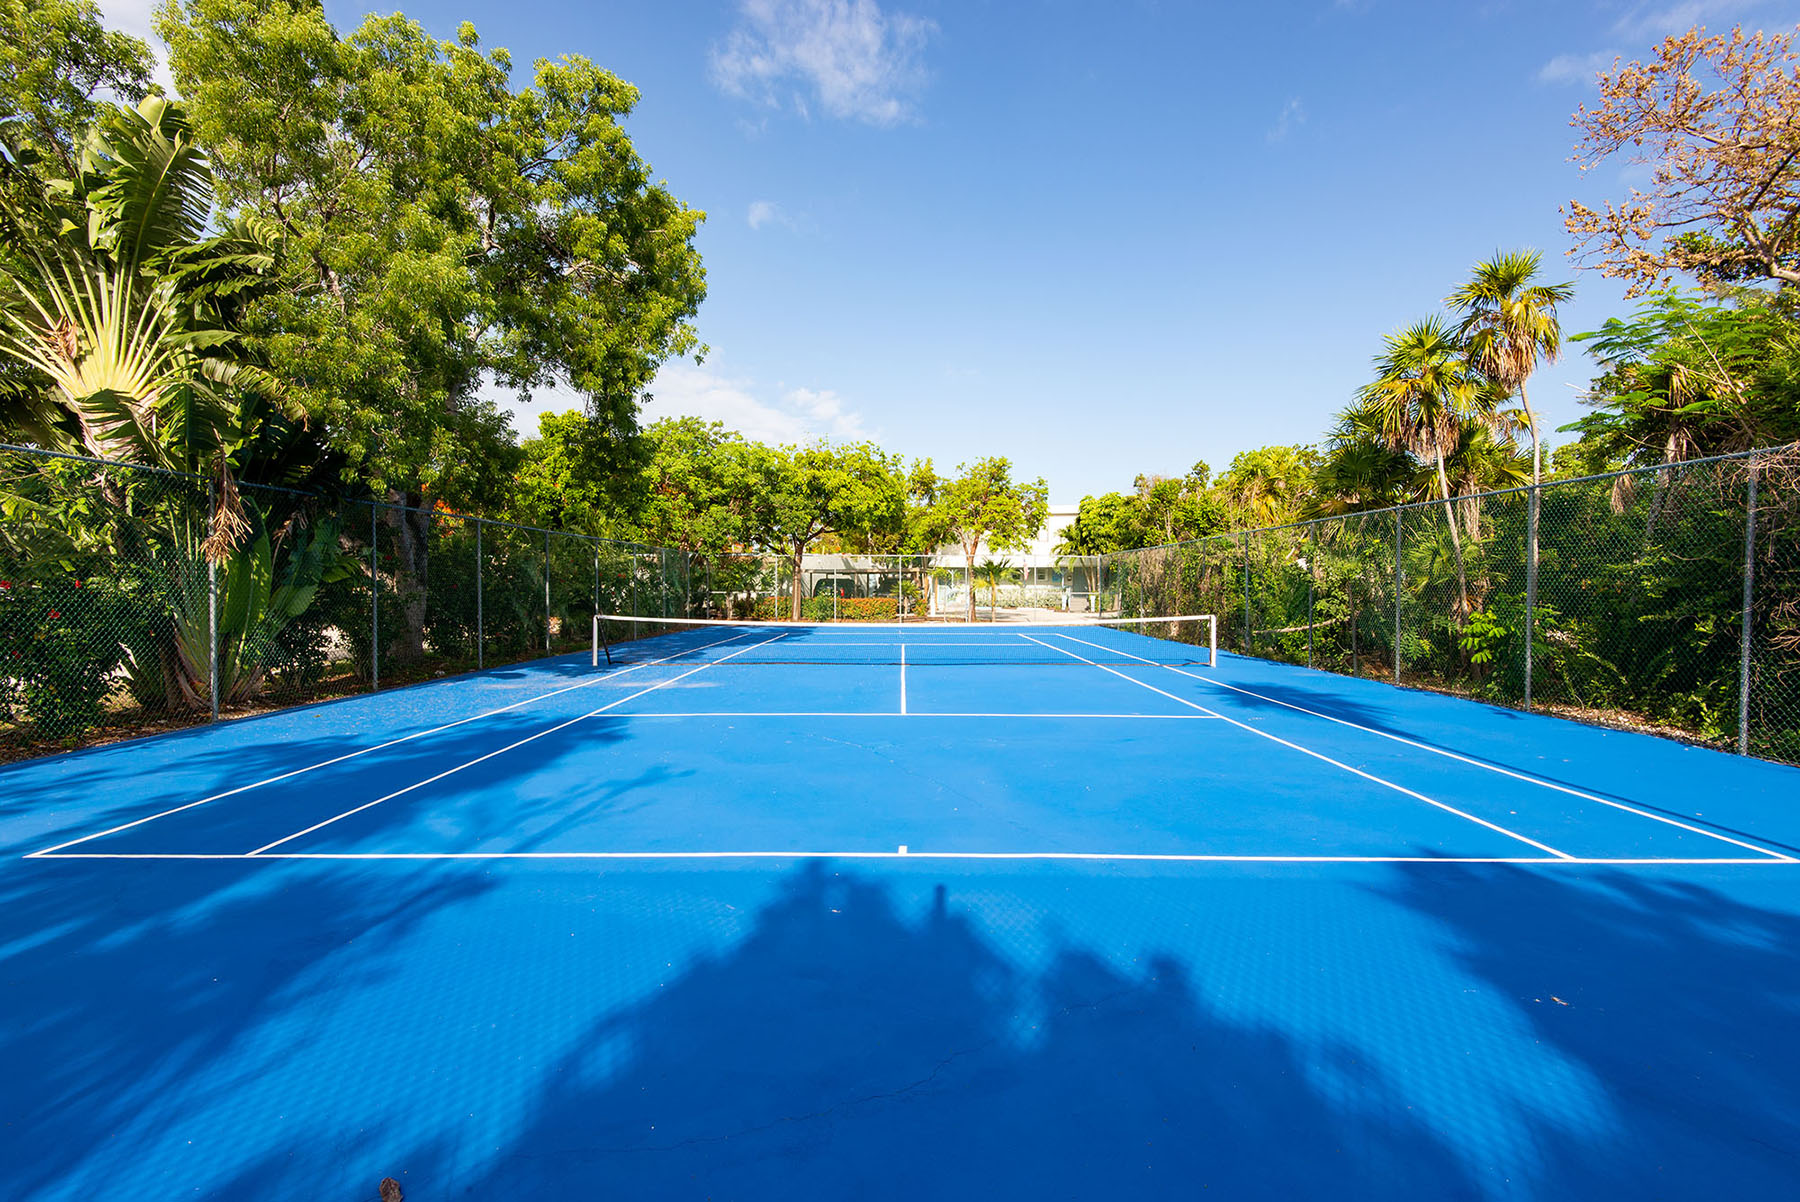 Marathon Key Beach Club tennis court